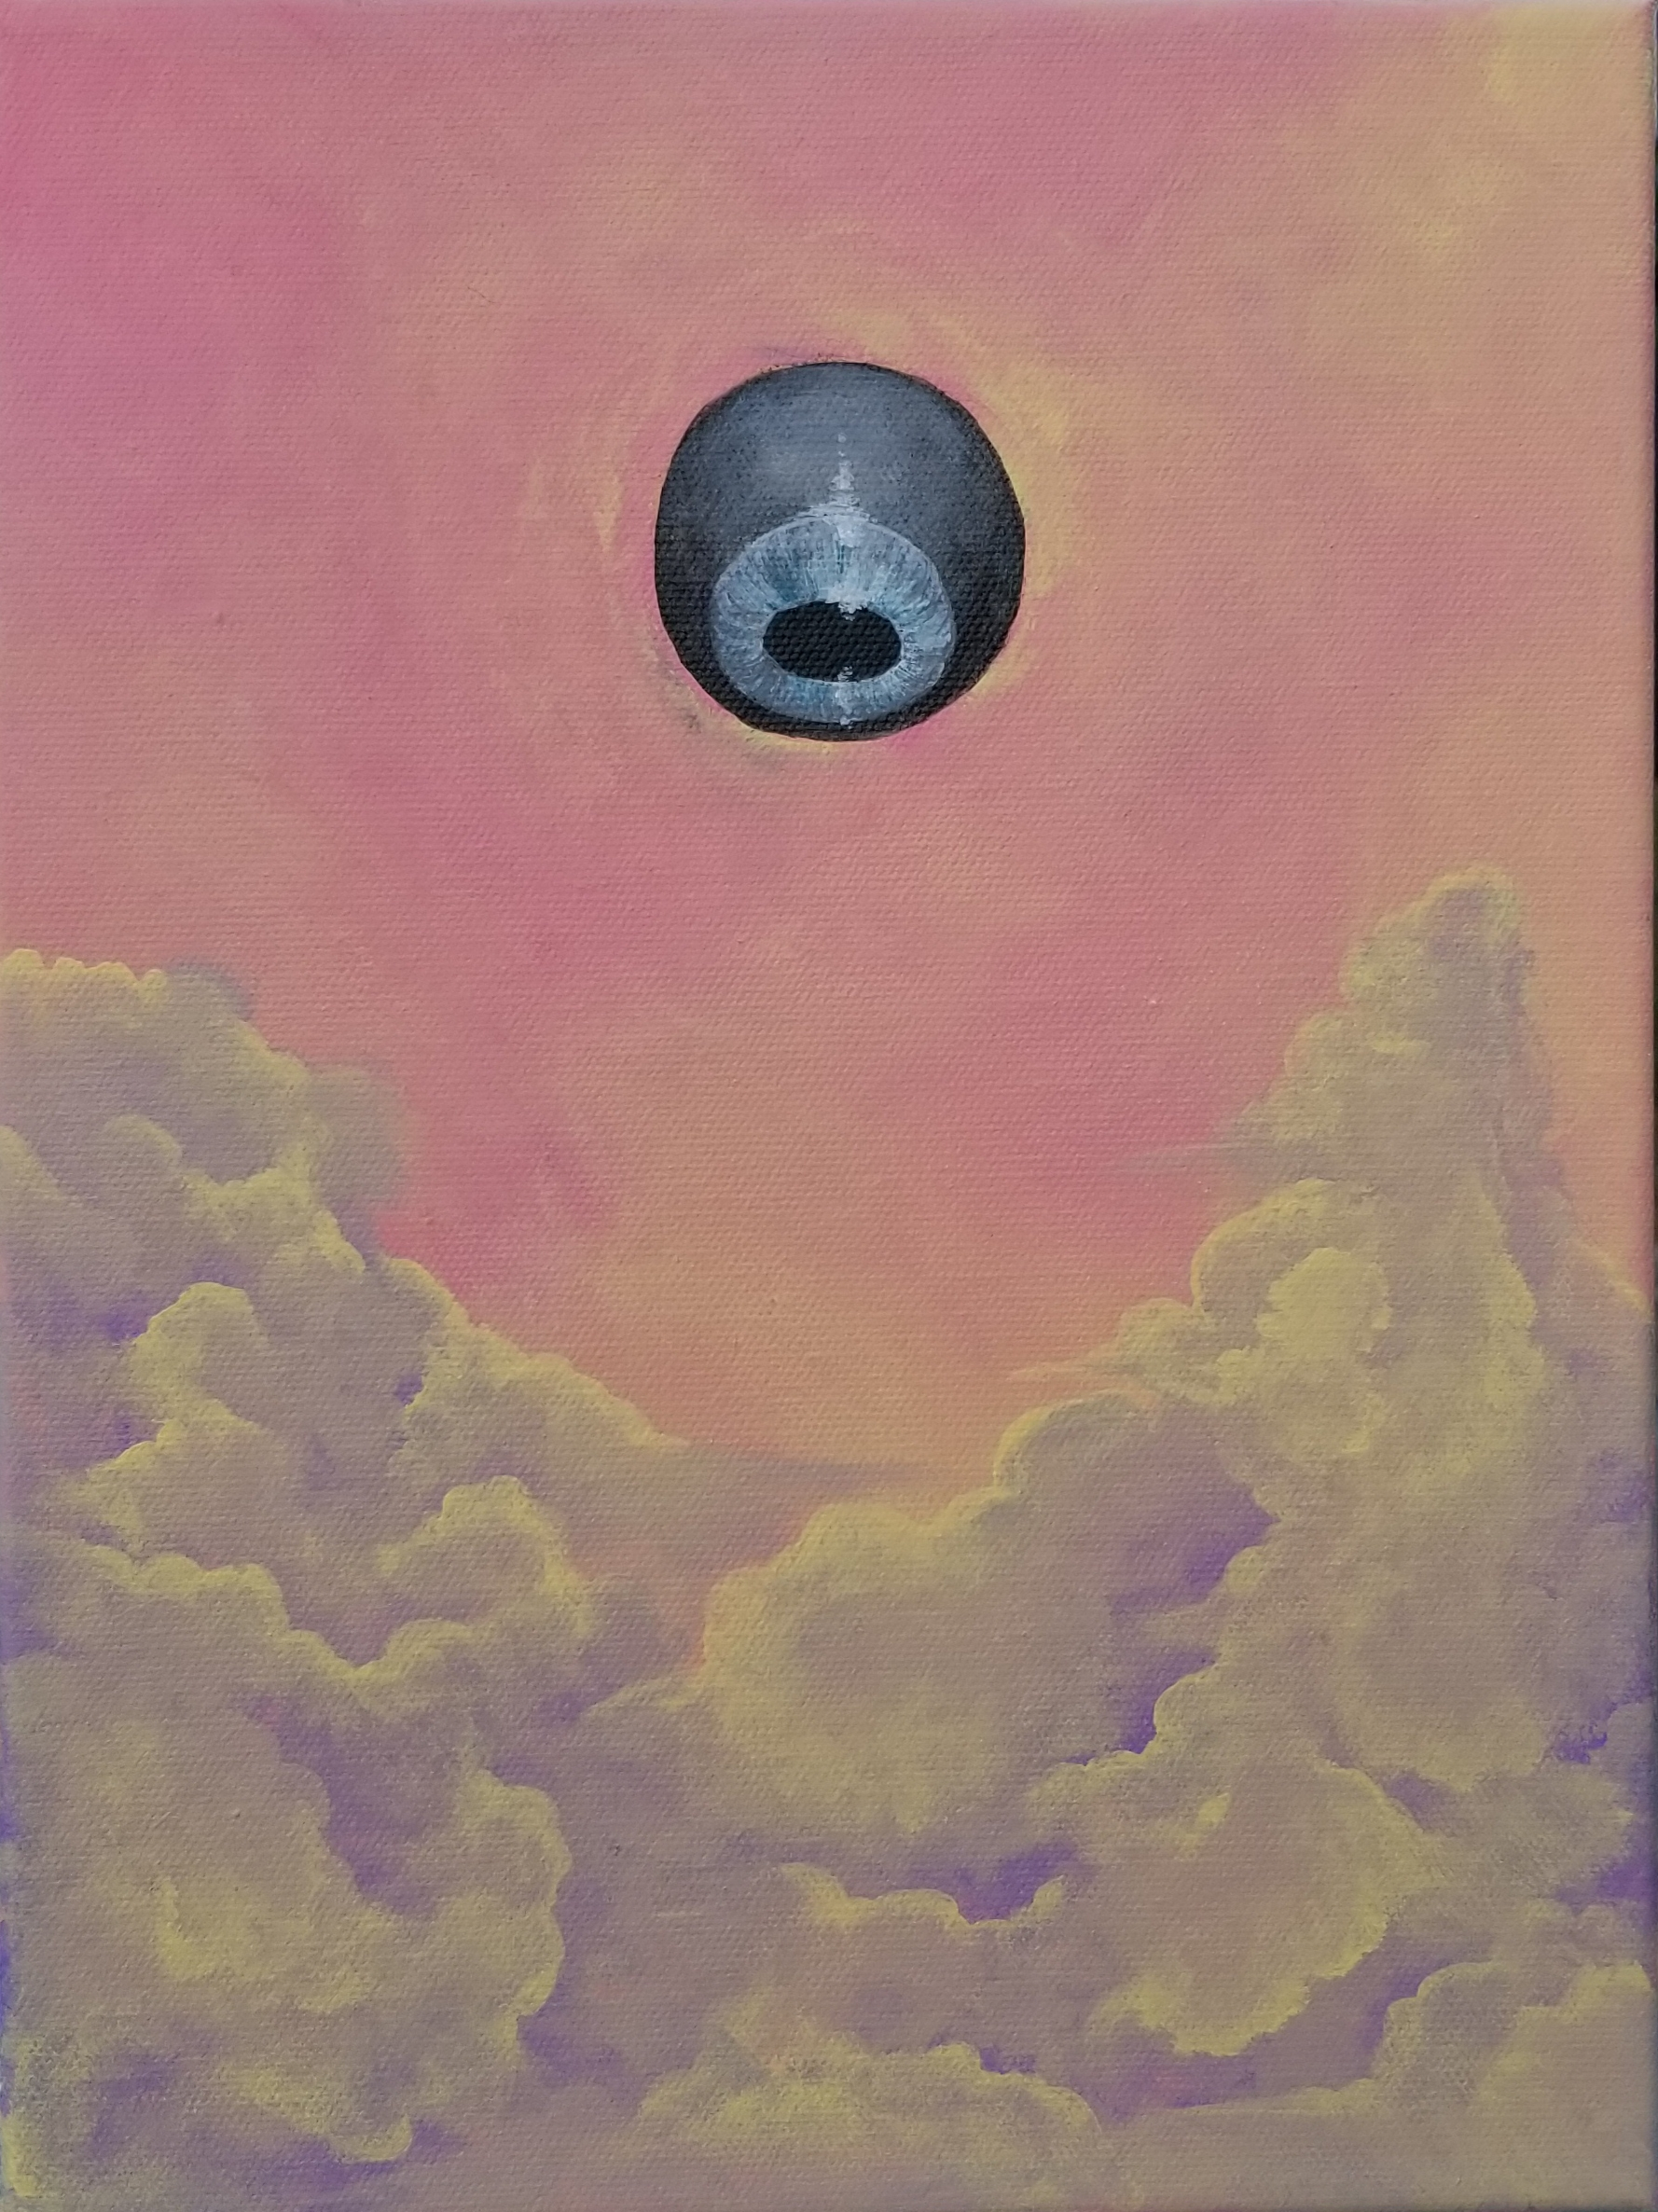 acrylic painting of an icy blue eye with a blackened sclera floating in a pink and gold sky over purple and yellow clouds at sunset